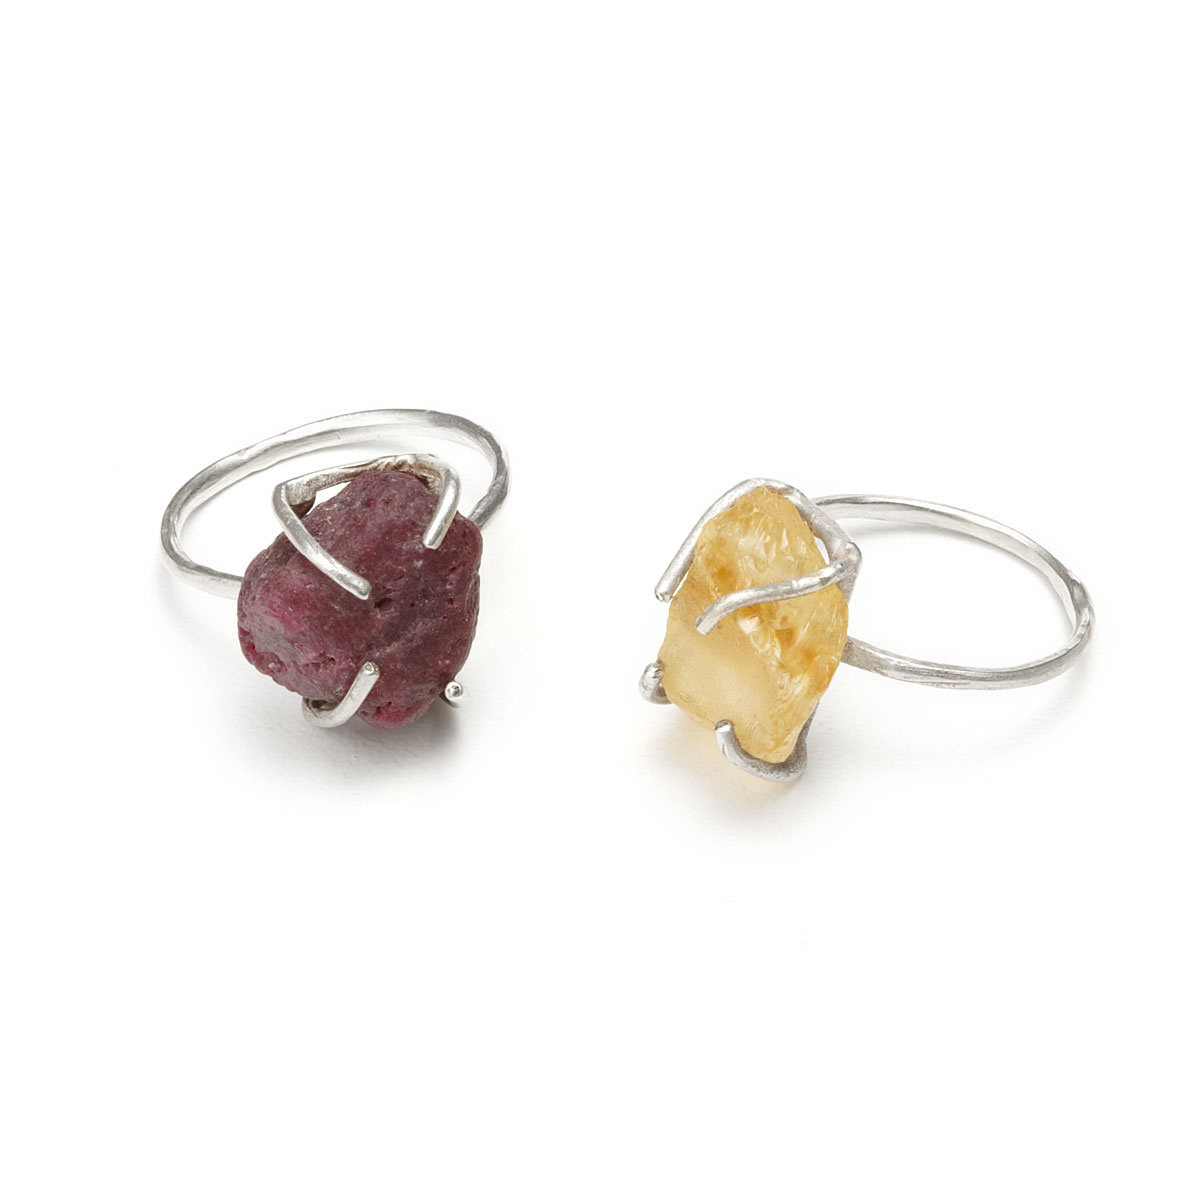 RAW GEMSTONE RING | silver necklace, natural stones | UncommonGoods